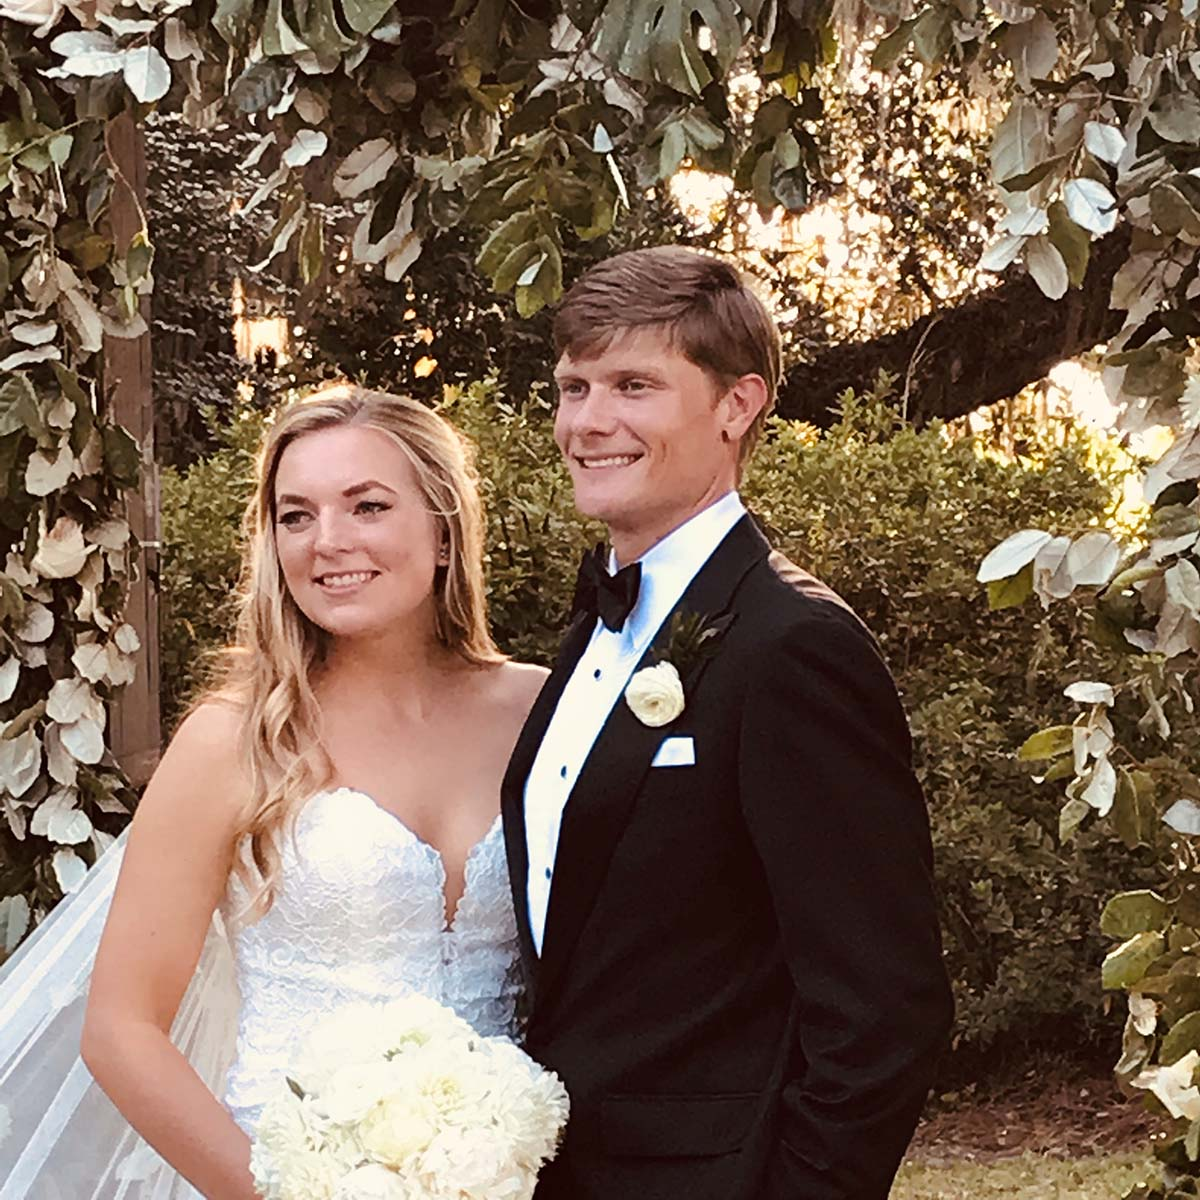 Couple smiling together after getting married